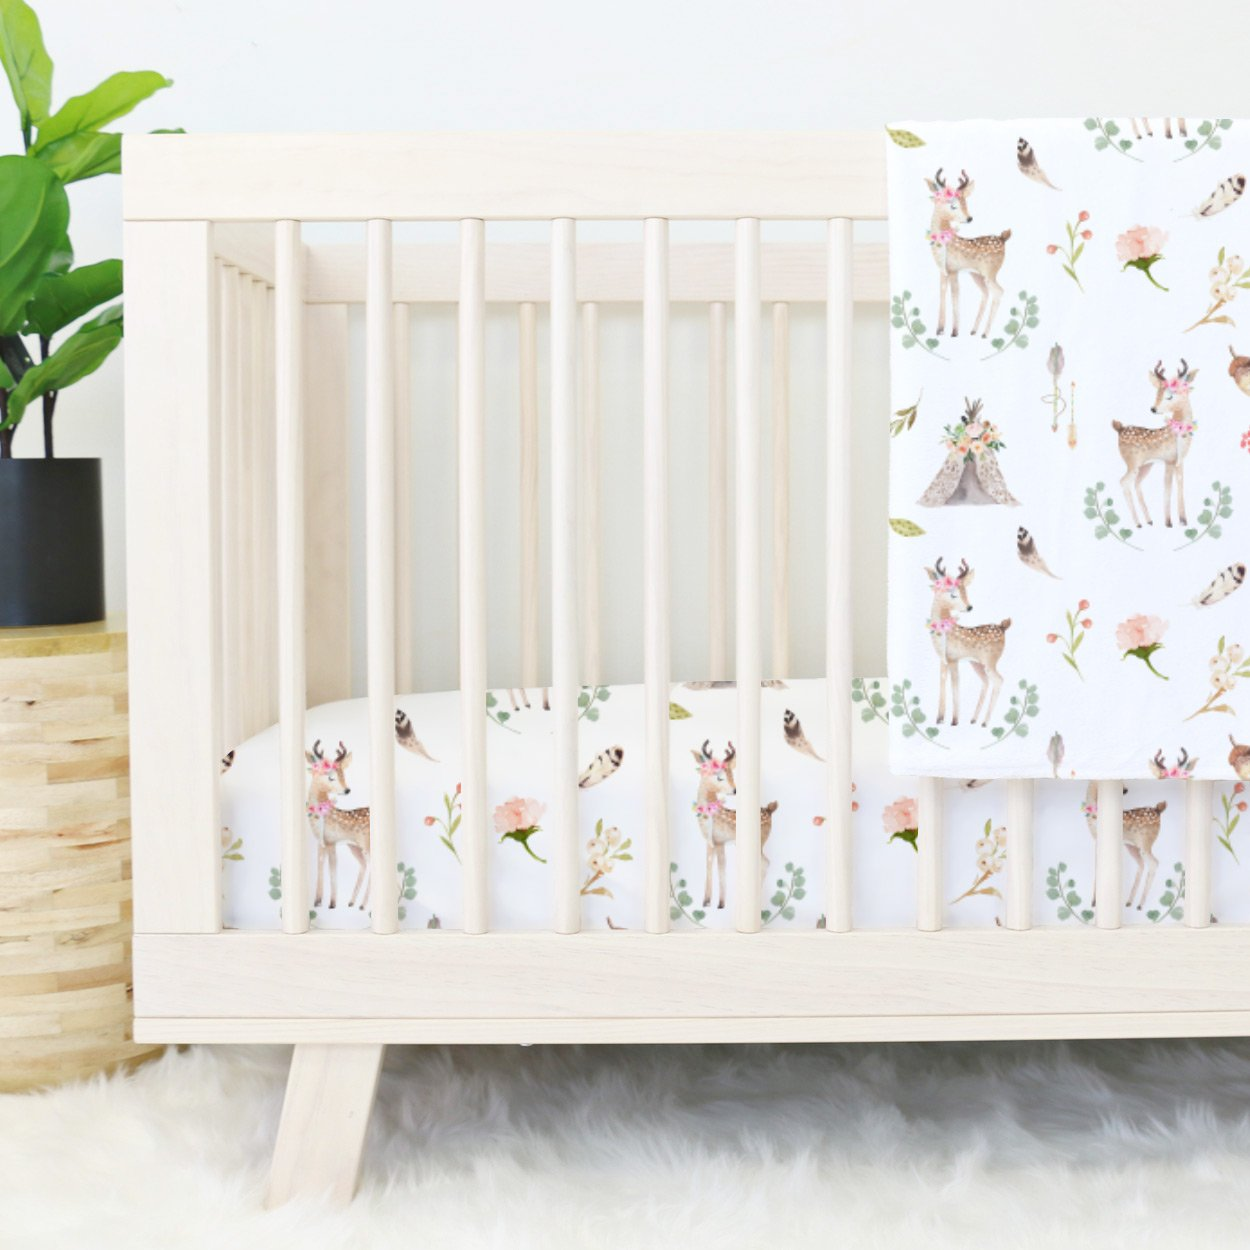 Blakely S Boho Woodland Deer Nursery Bedding Caden Lane